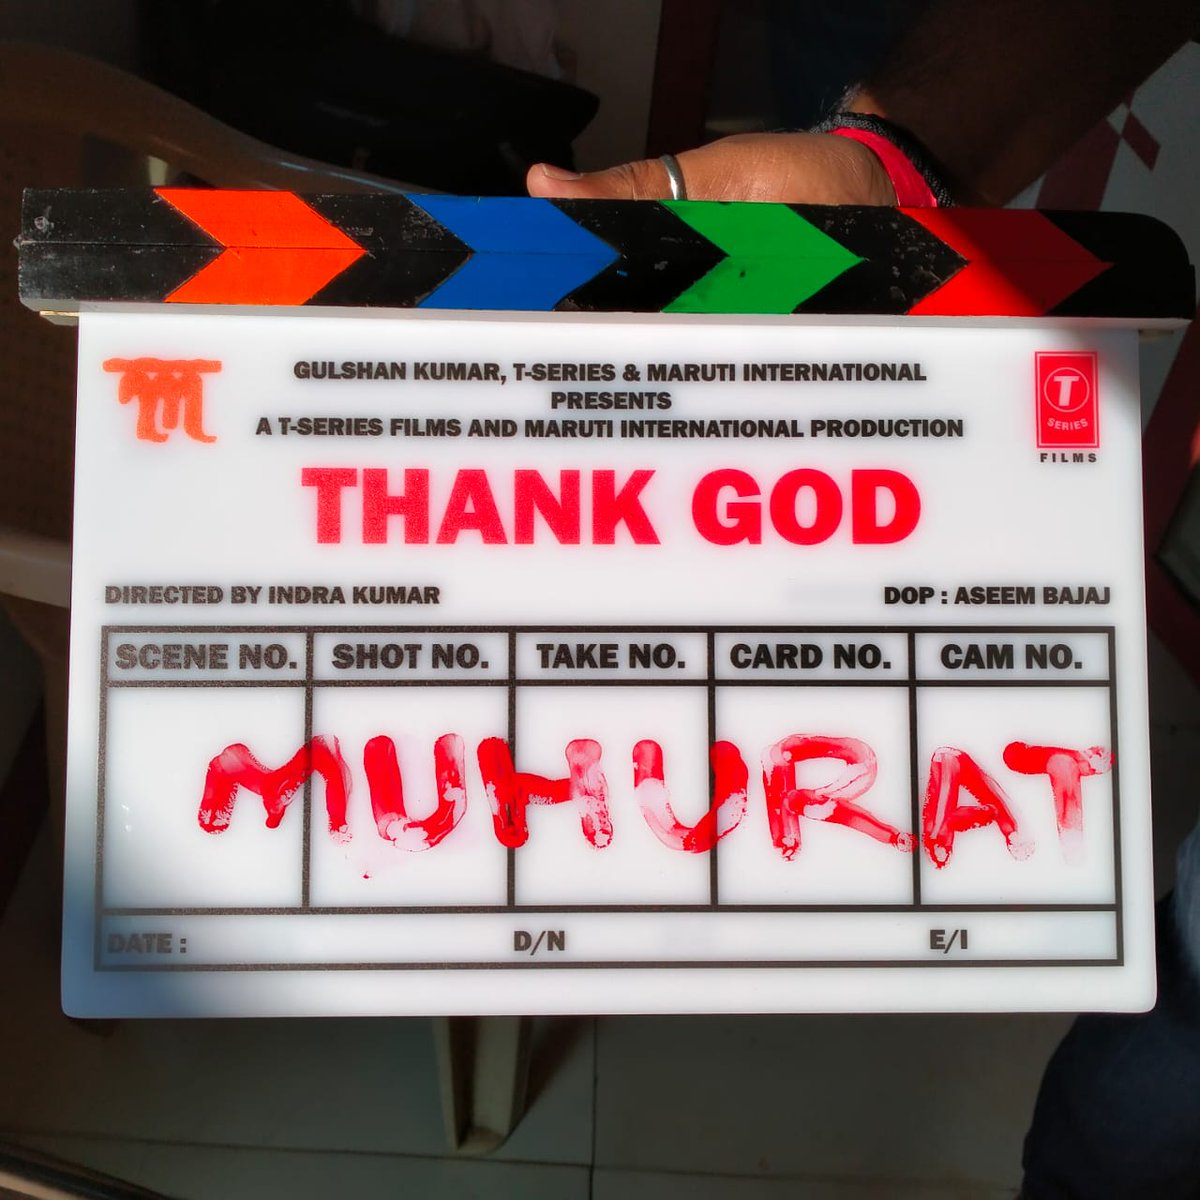 Starring @ajaydevgn , @SidMalhotra  & @Rakulpreet , #ThankGod  is a slice of life comedy with a great message   Dir by Indra Kumar is prod by Bhushan Kumar, Krishan Kumar, Ashok Thakeria, Sunir Kheterpal, Deepak Mukut, Anand Pandit and Markand Adhikari and co-prod by Yash Shah.